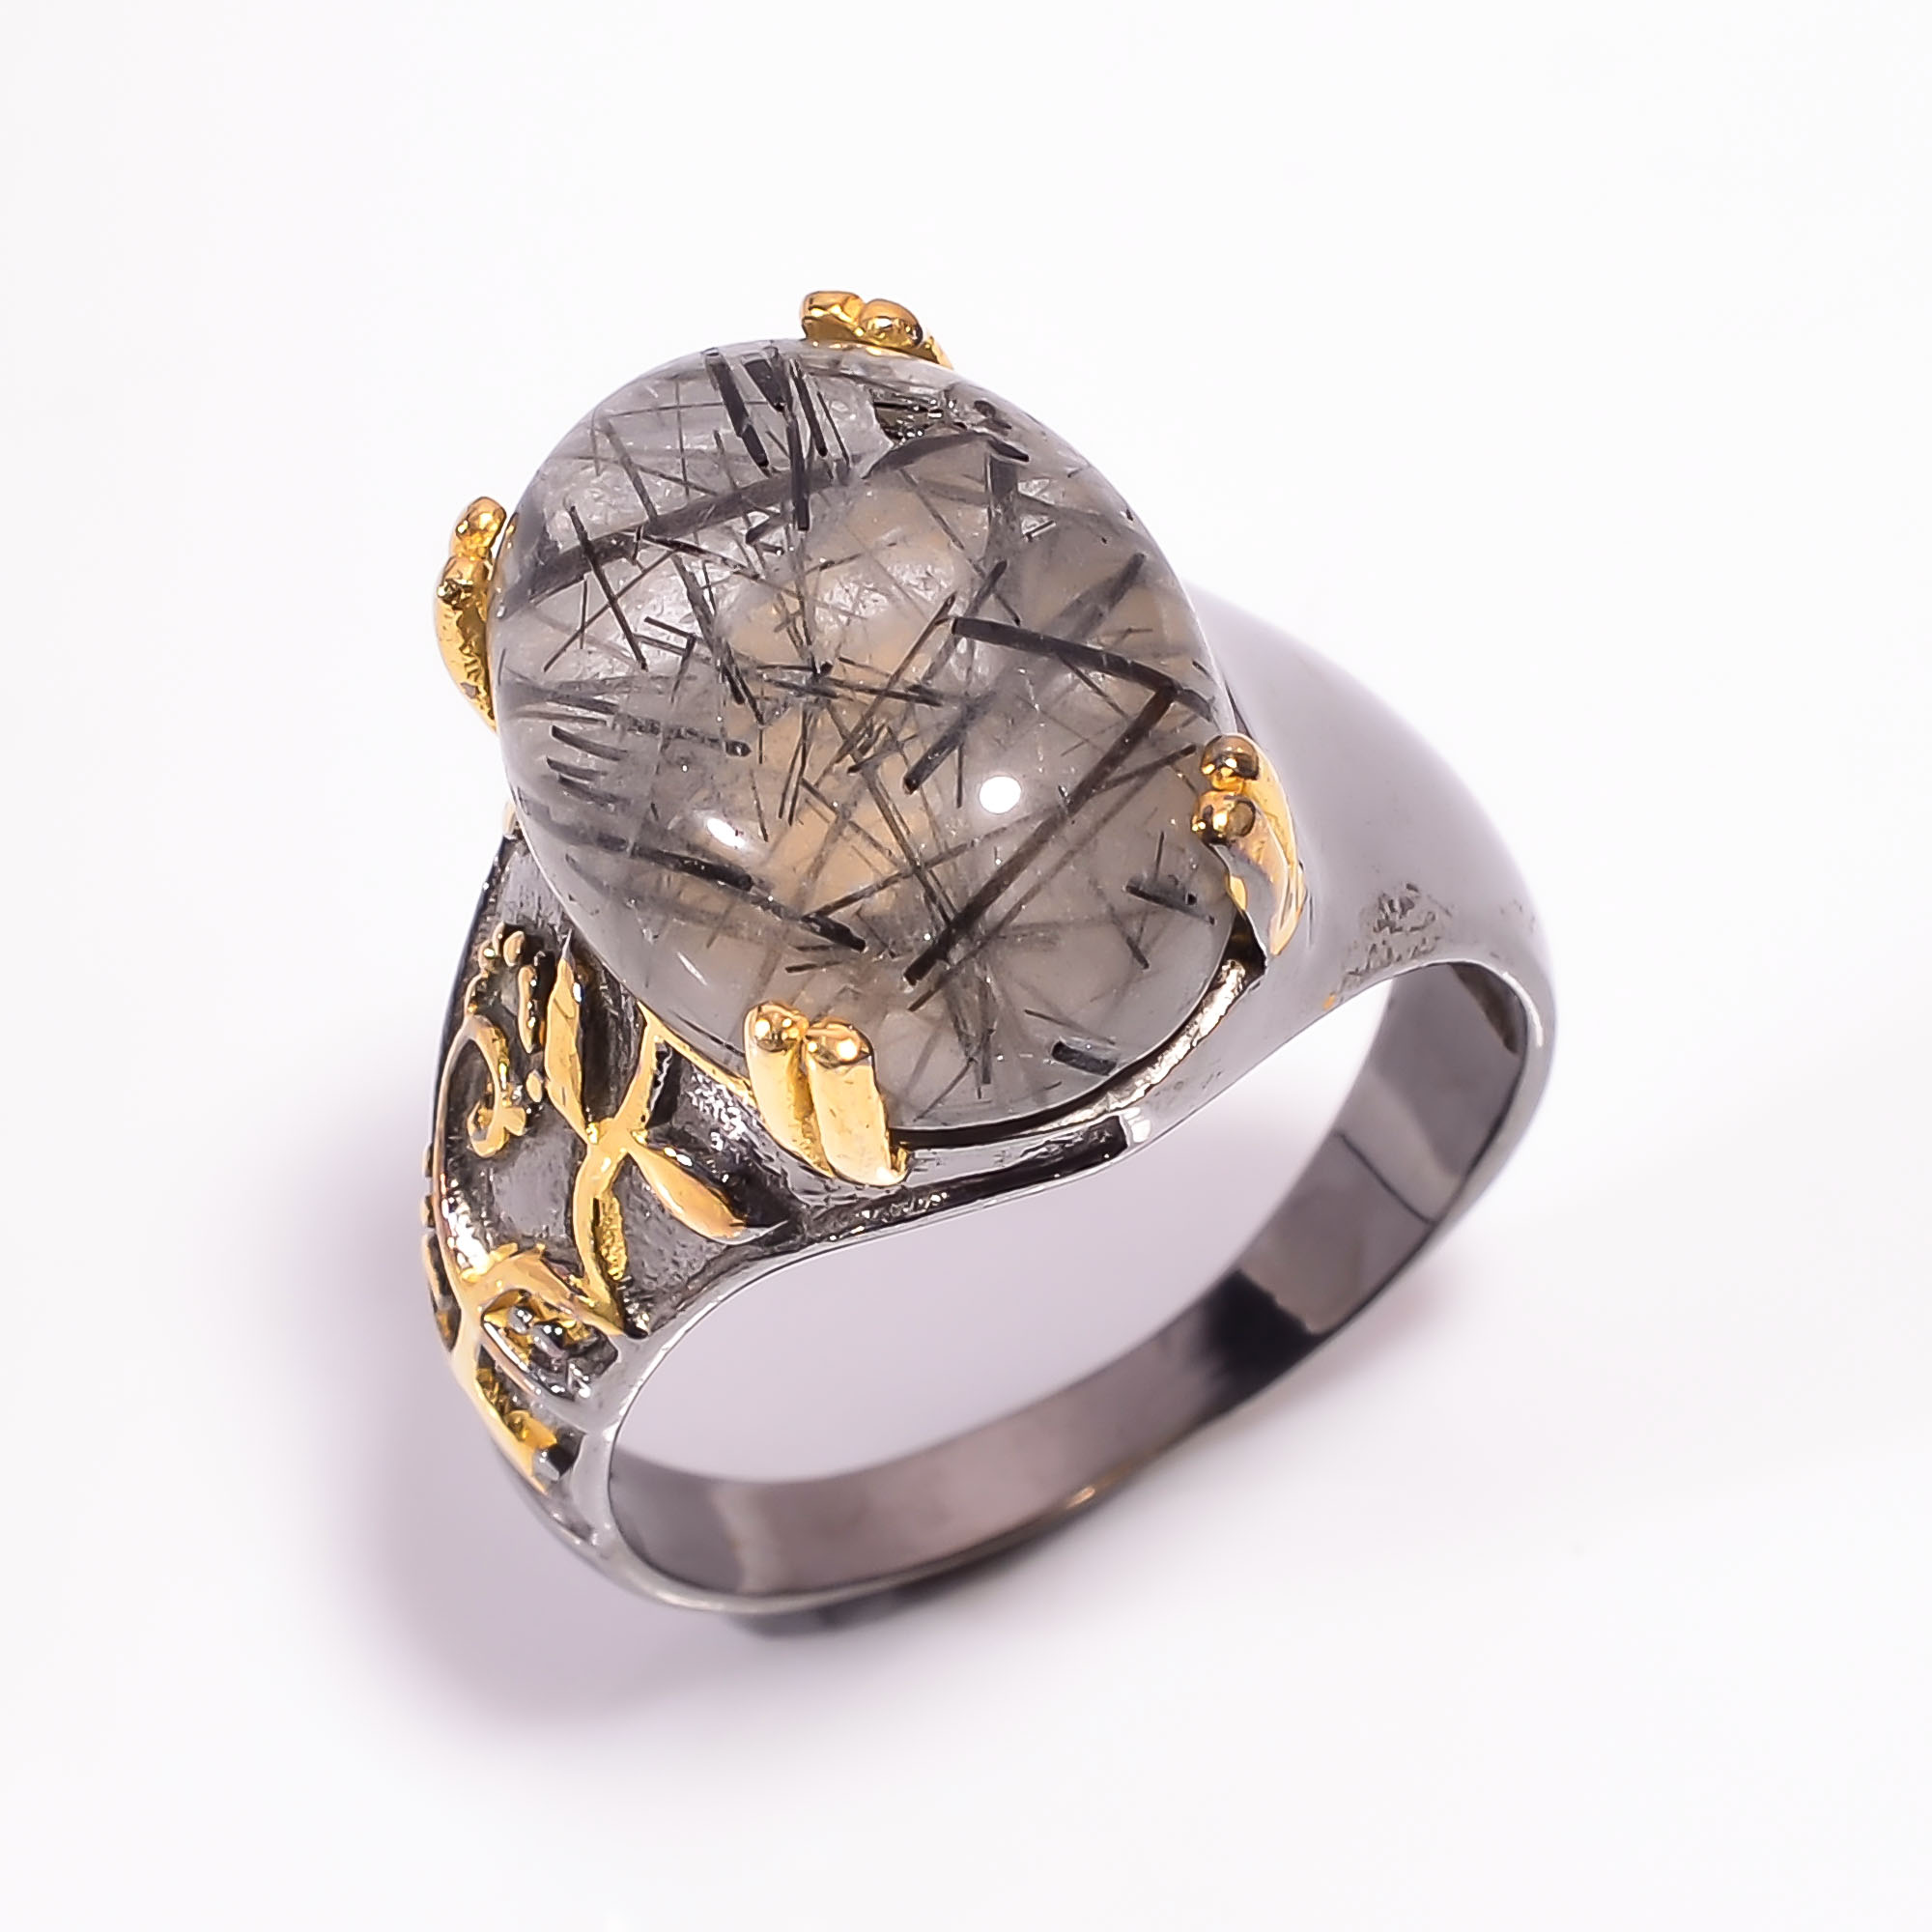 925 Sterling Silver Gold Plated & Black Rhodium Two Tone Rutile Ring Size US 9